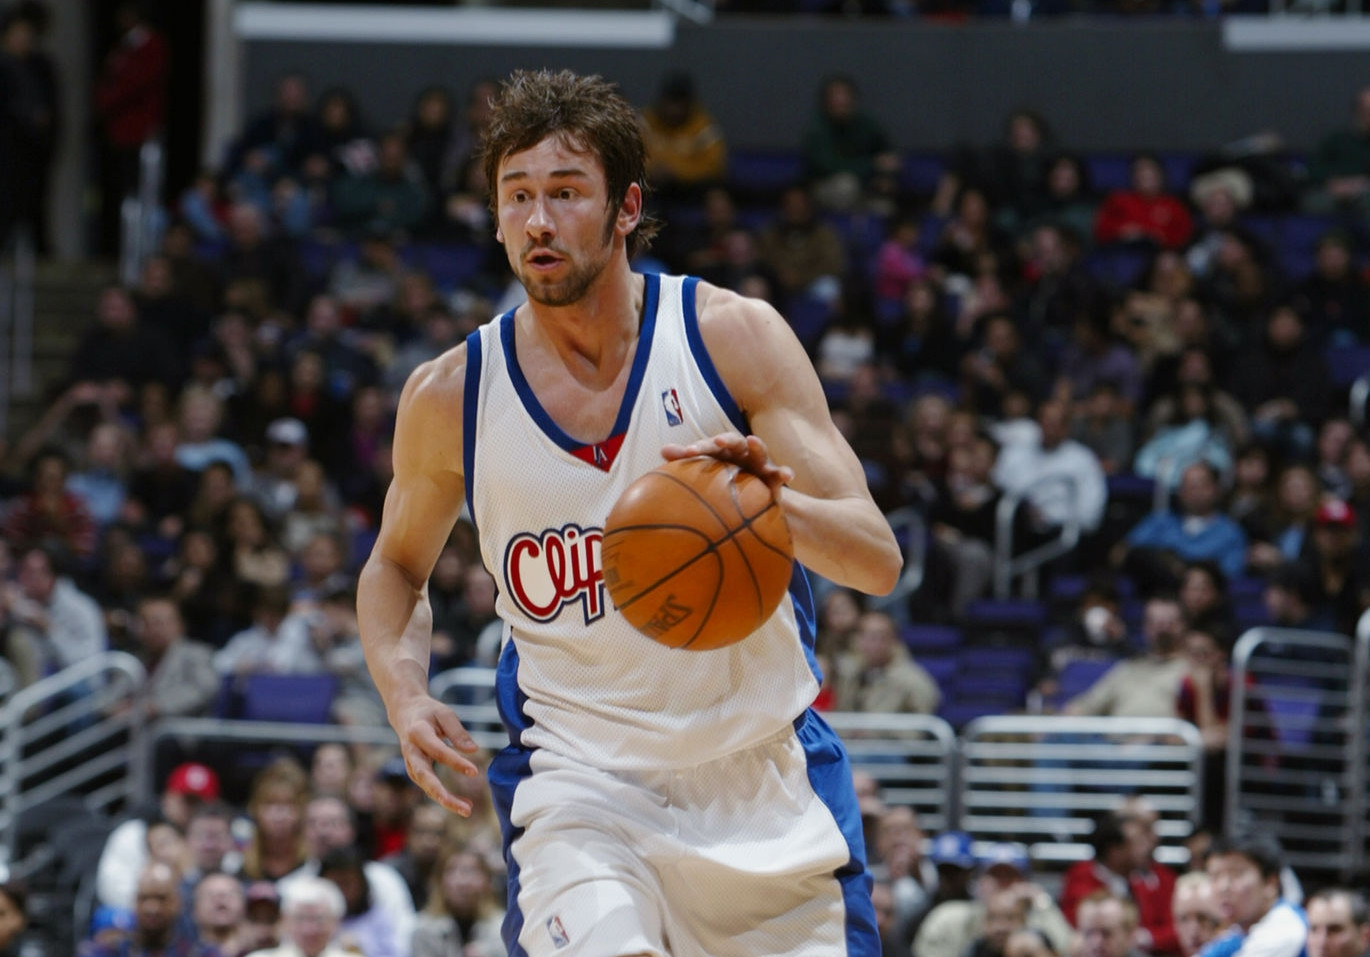 Marko Jaric, Los Angeles Clippers